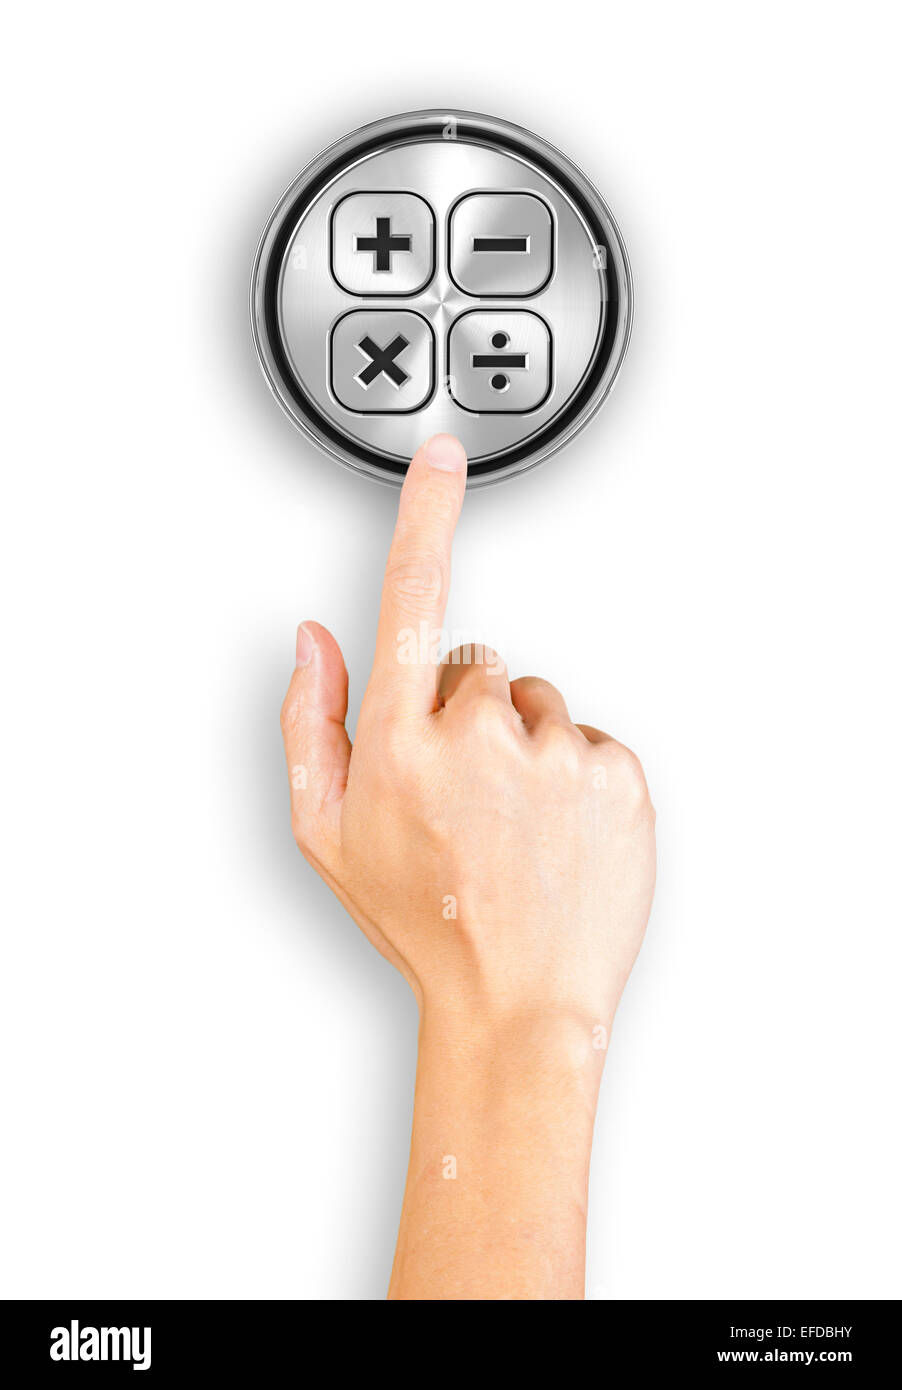 Clicking a button with calculation sign - Stock Image